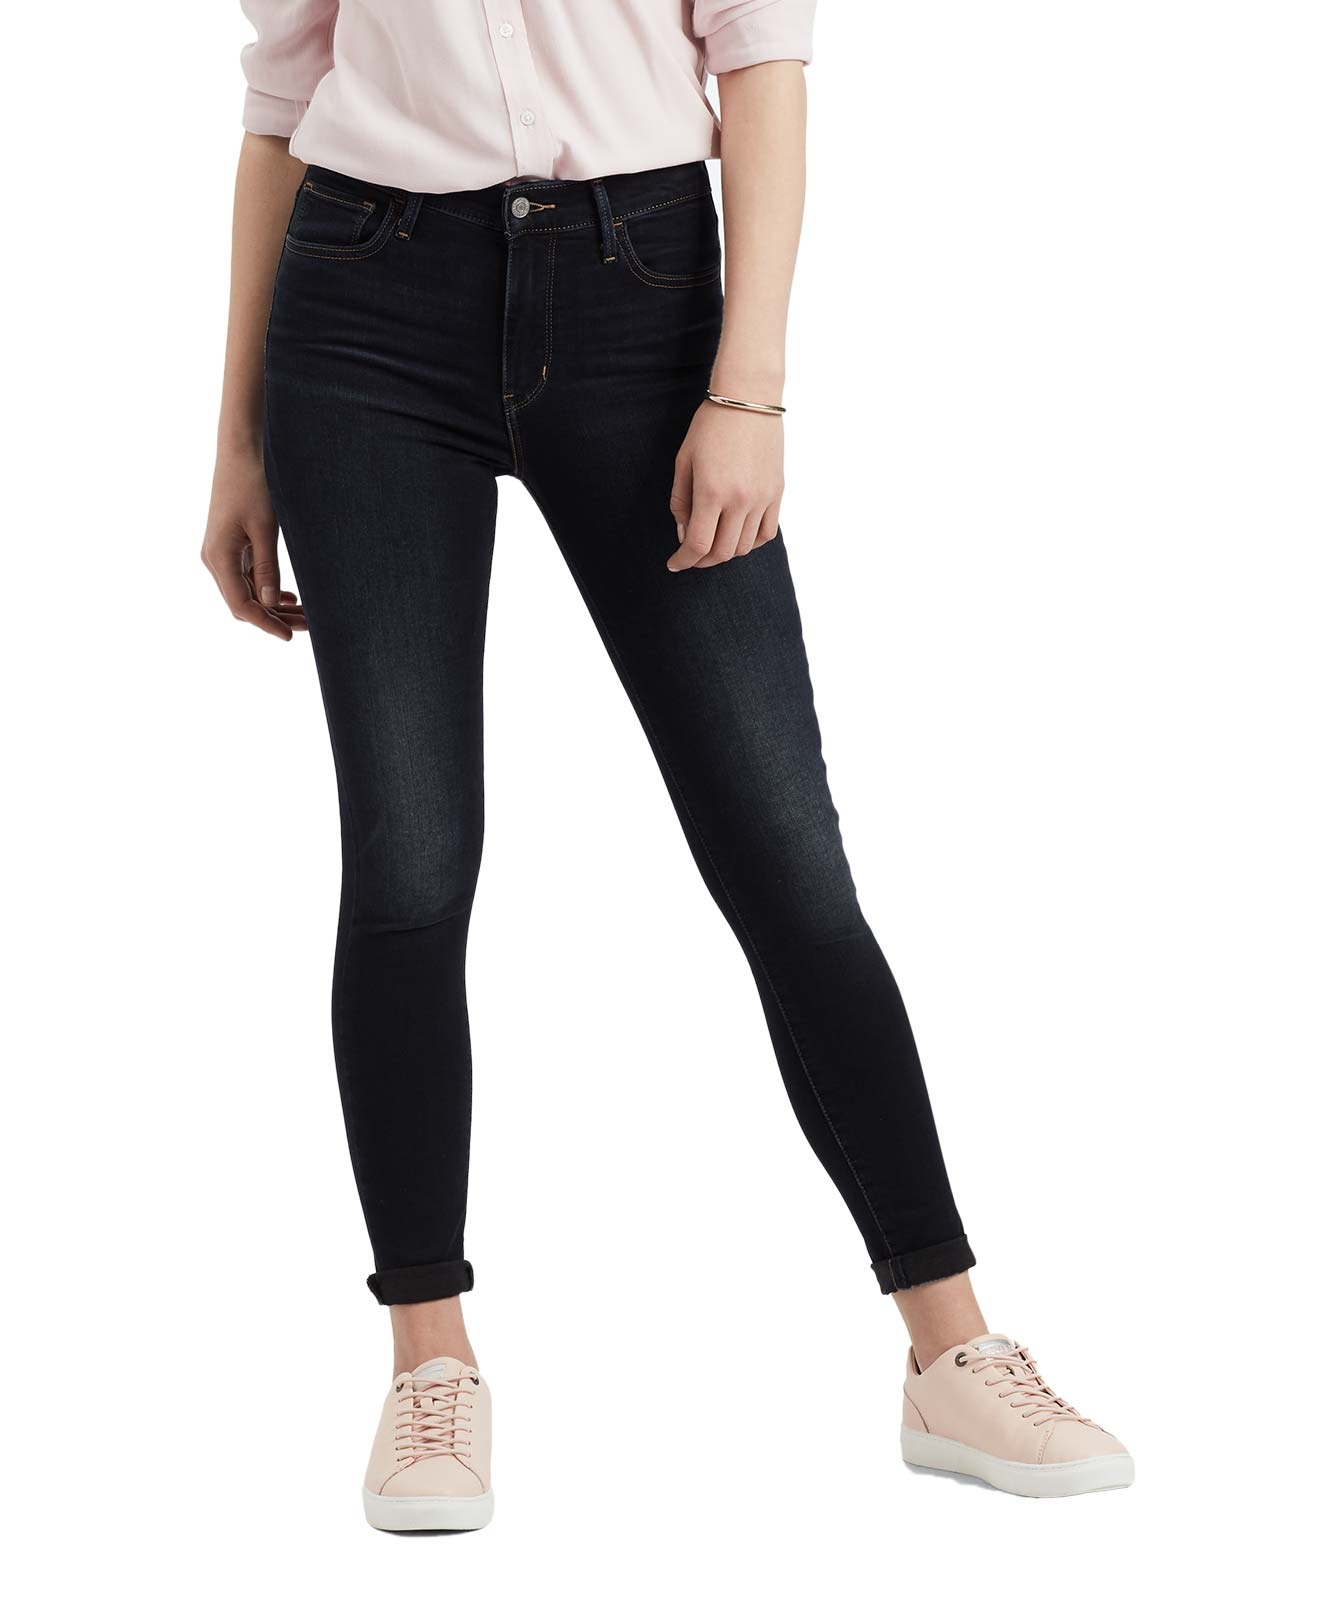 Hosen - Levis 720 dunkle High Waisted Skinny Jeans  - Onlineshop Jeans Meile